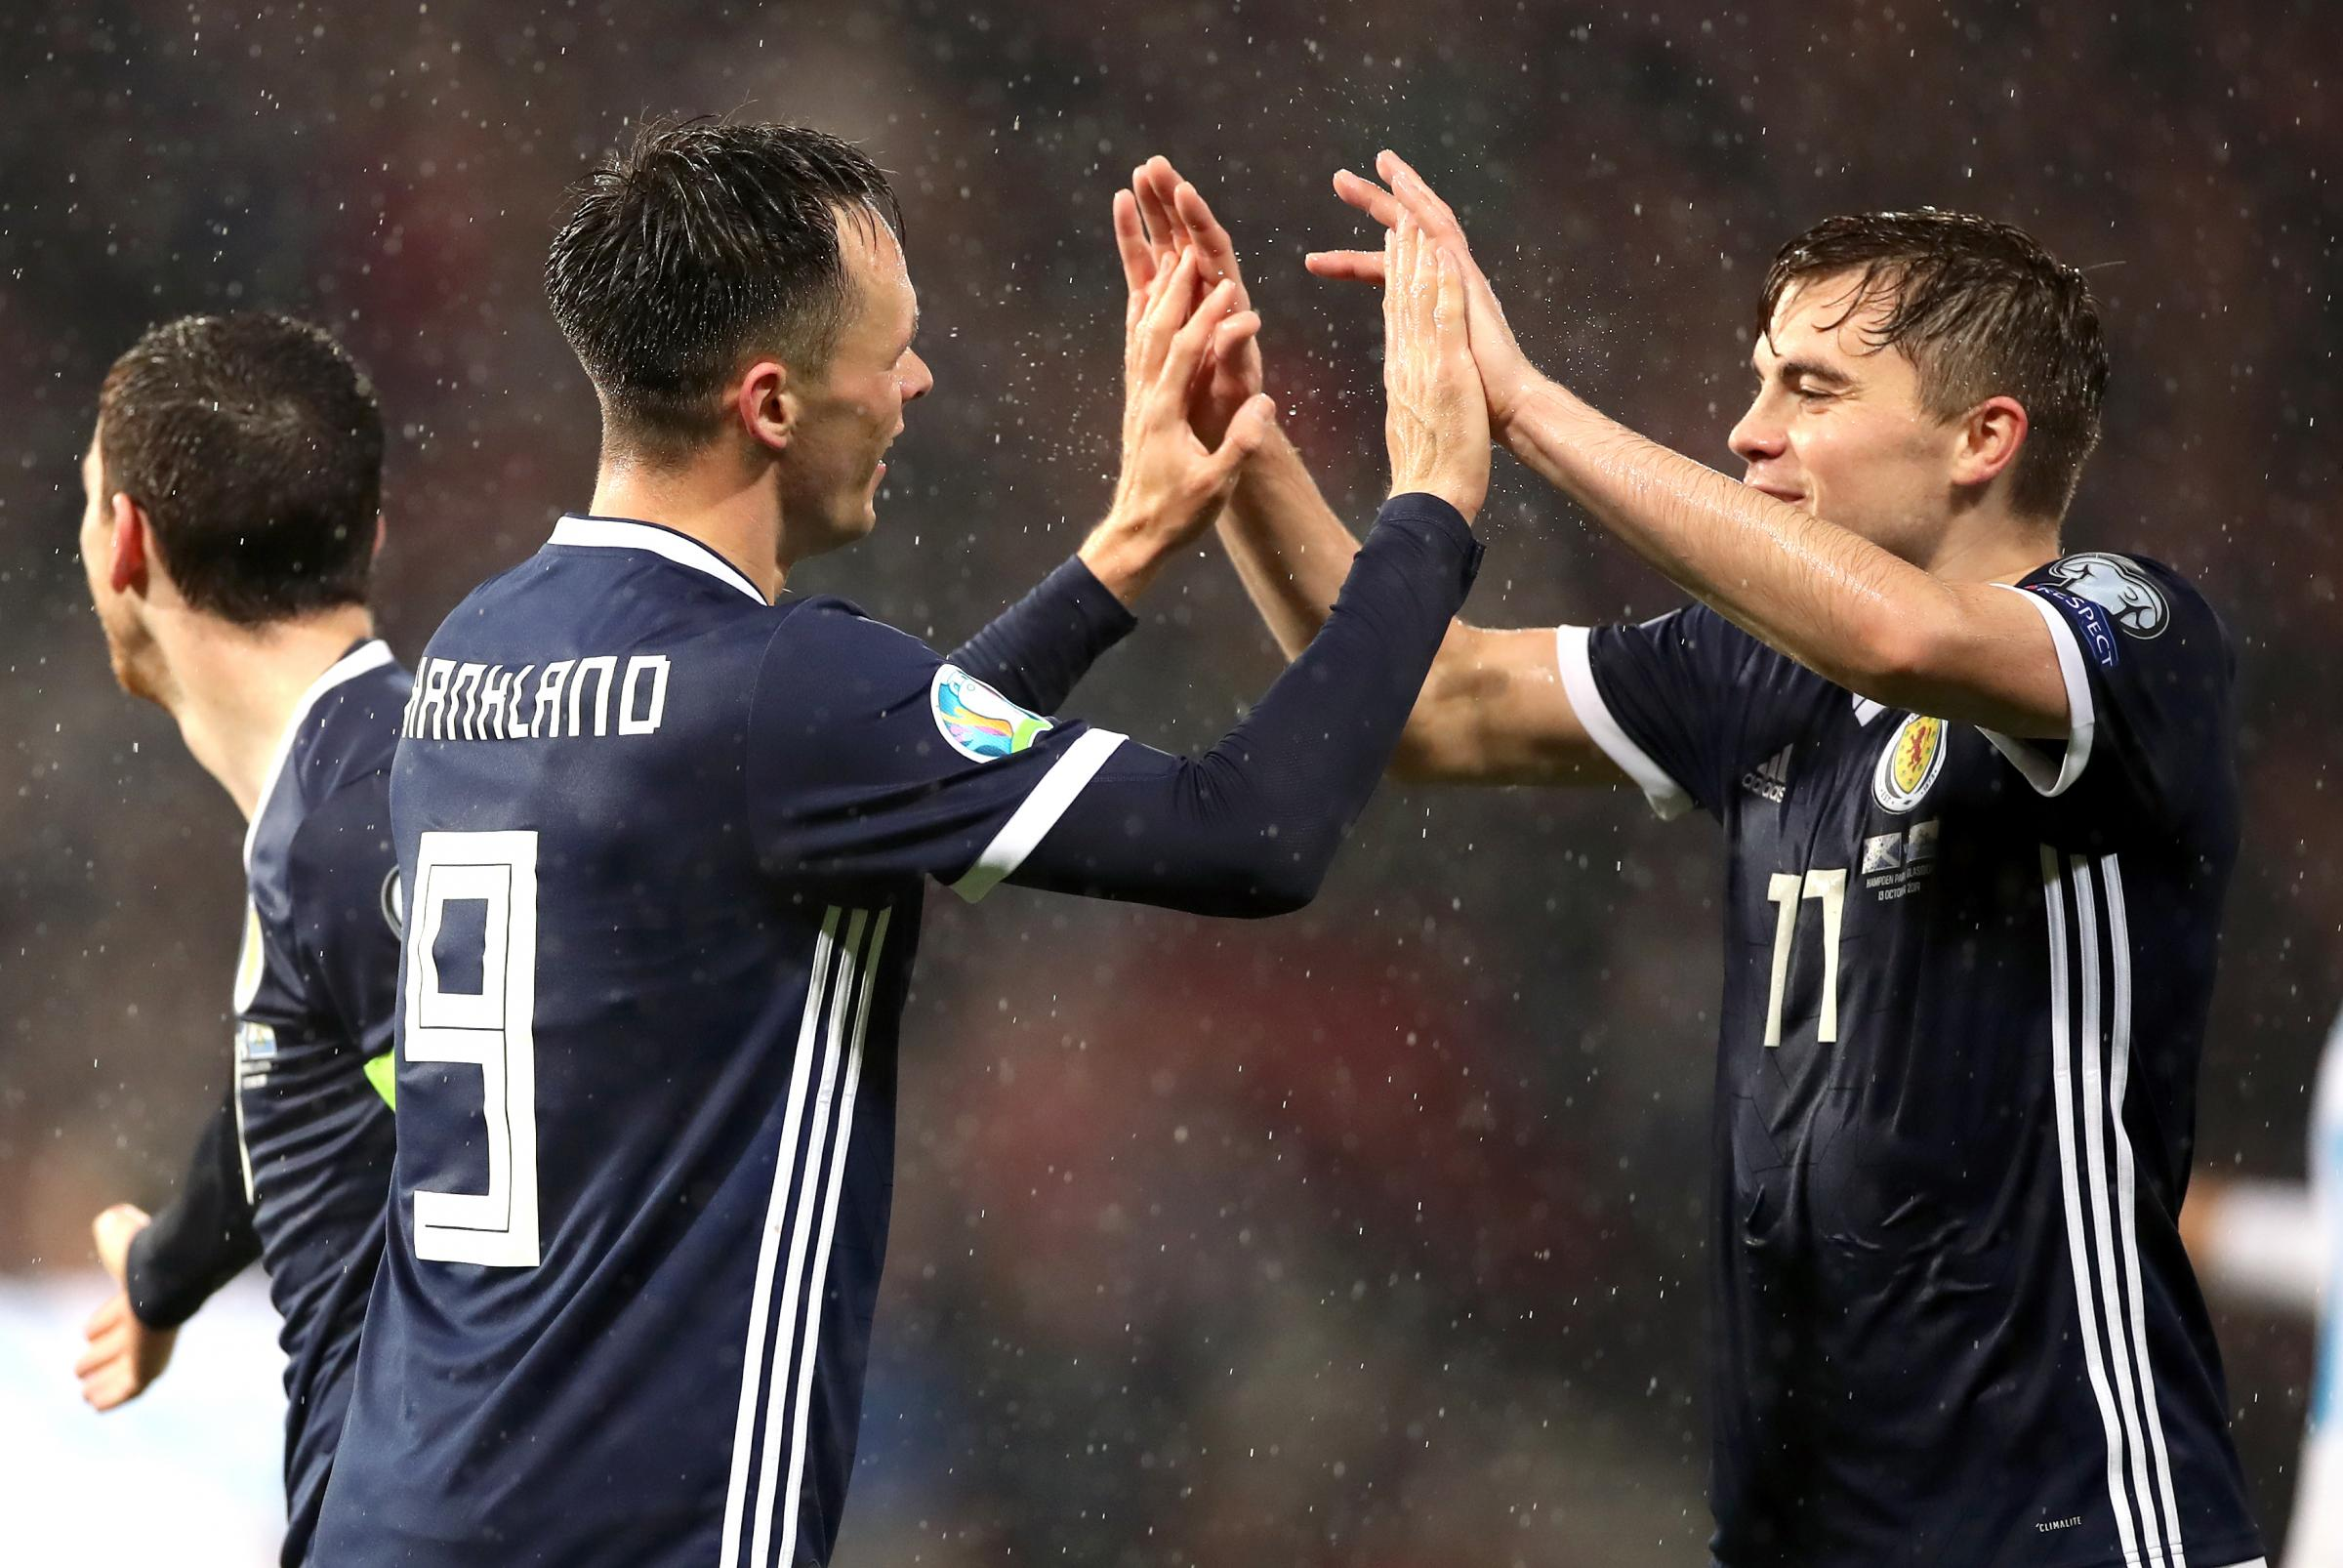 Watch: All goals and extended highlights from Scotland 6-0 San Marino at Hampden